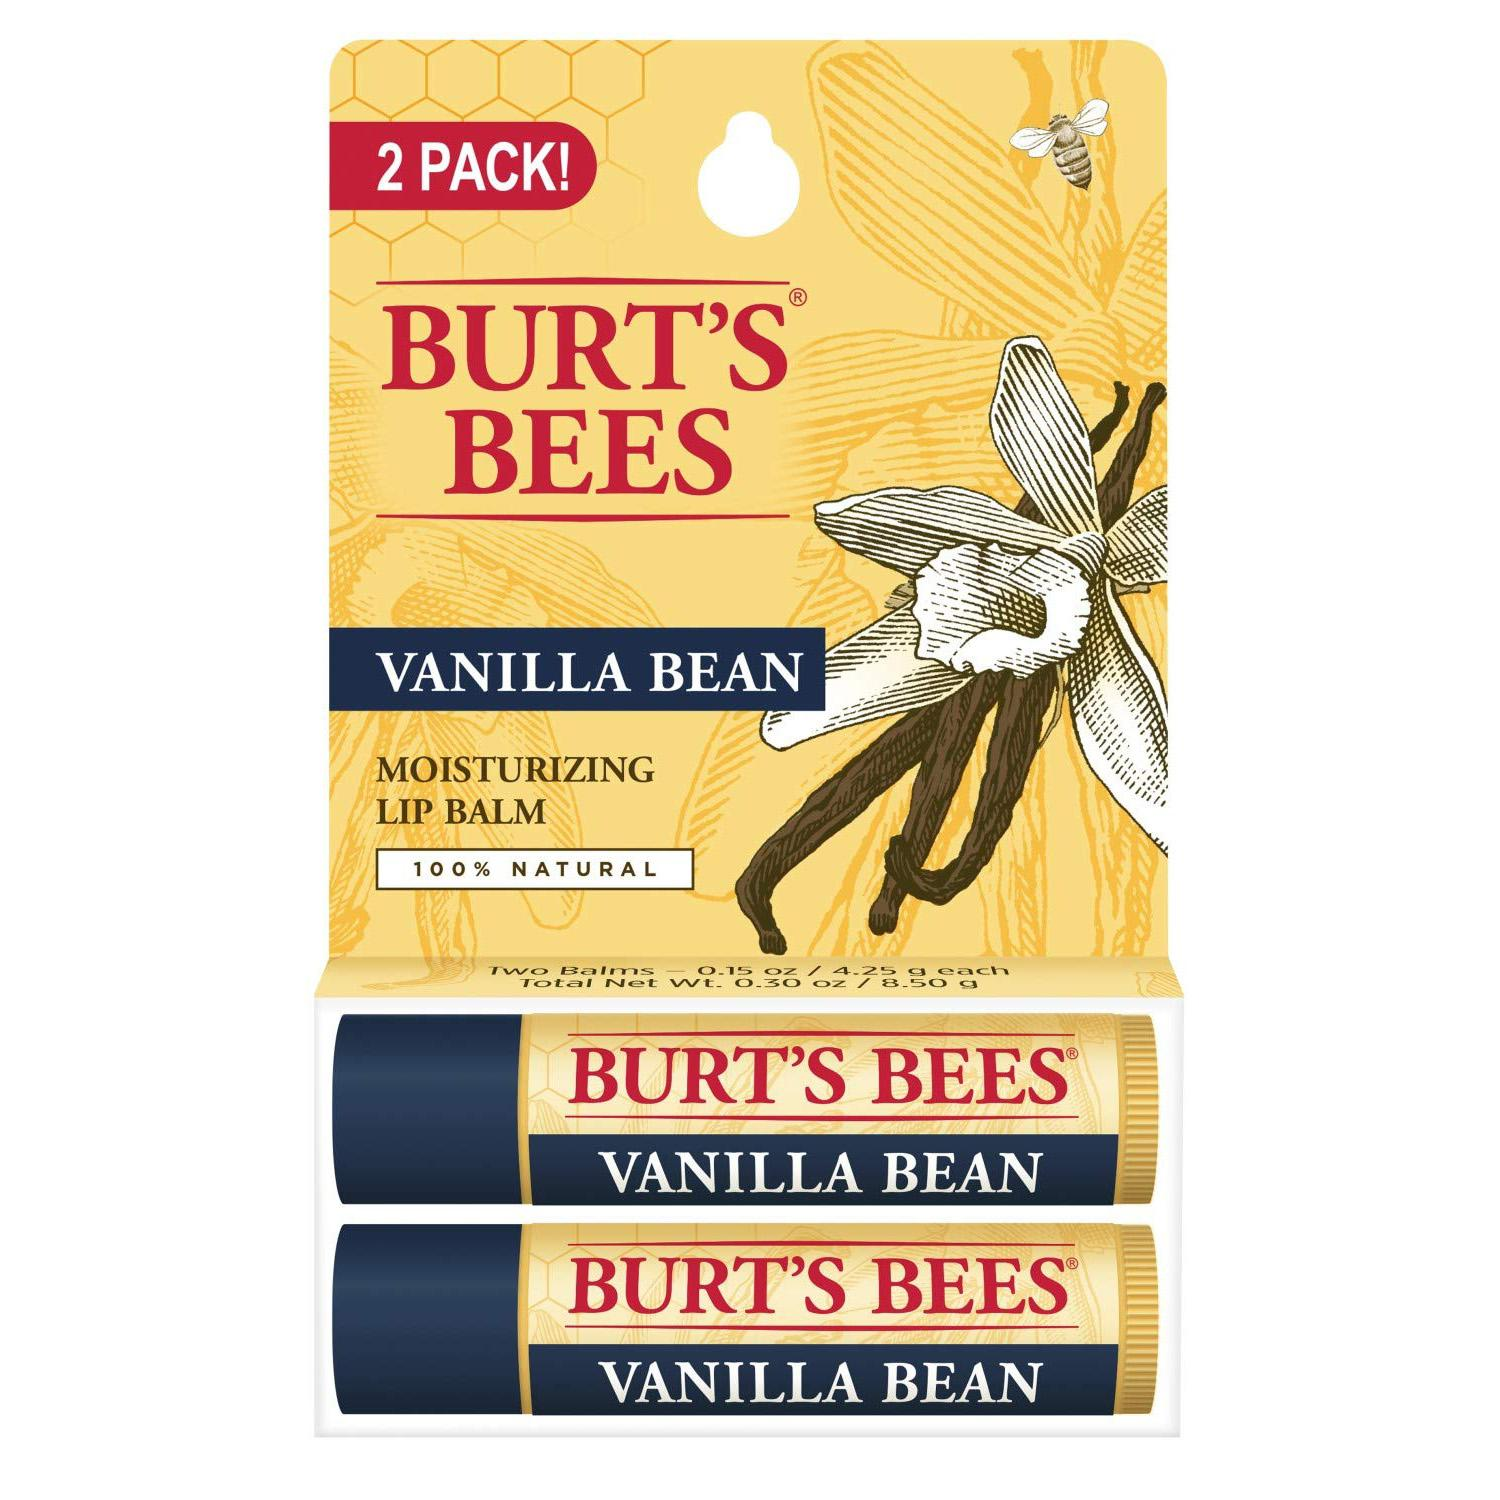 2 Burts Bees Natural Moisturizing Lip Balms for $3.11 Shipped